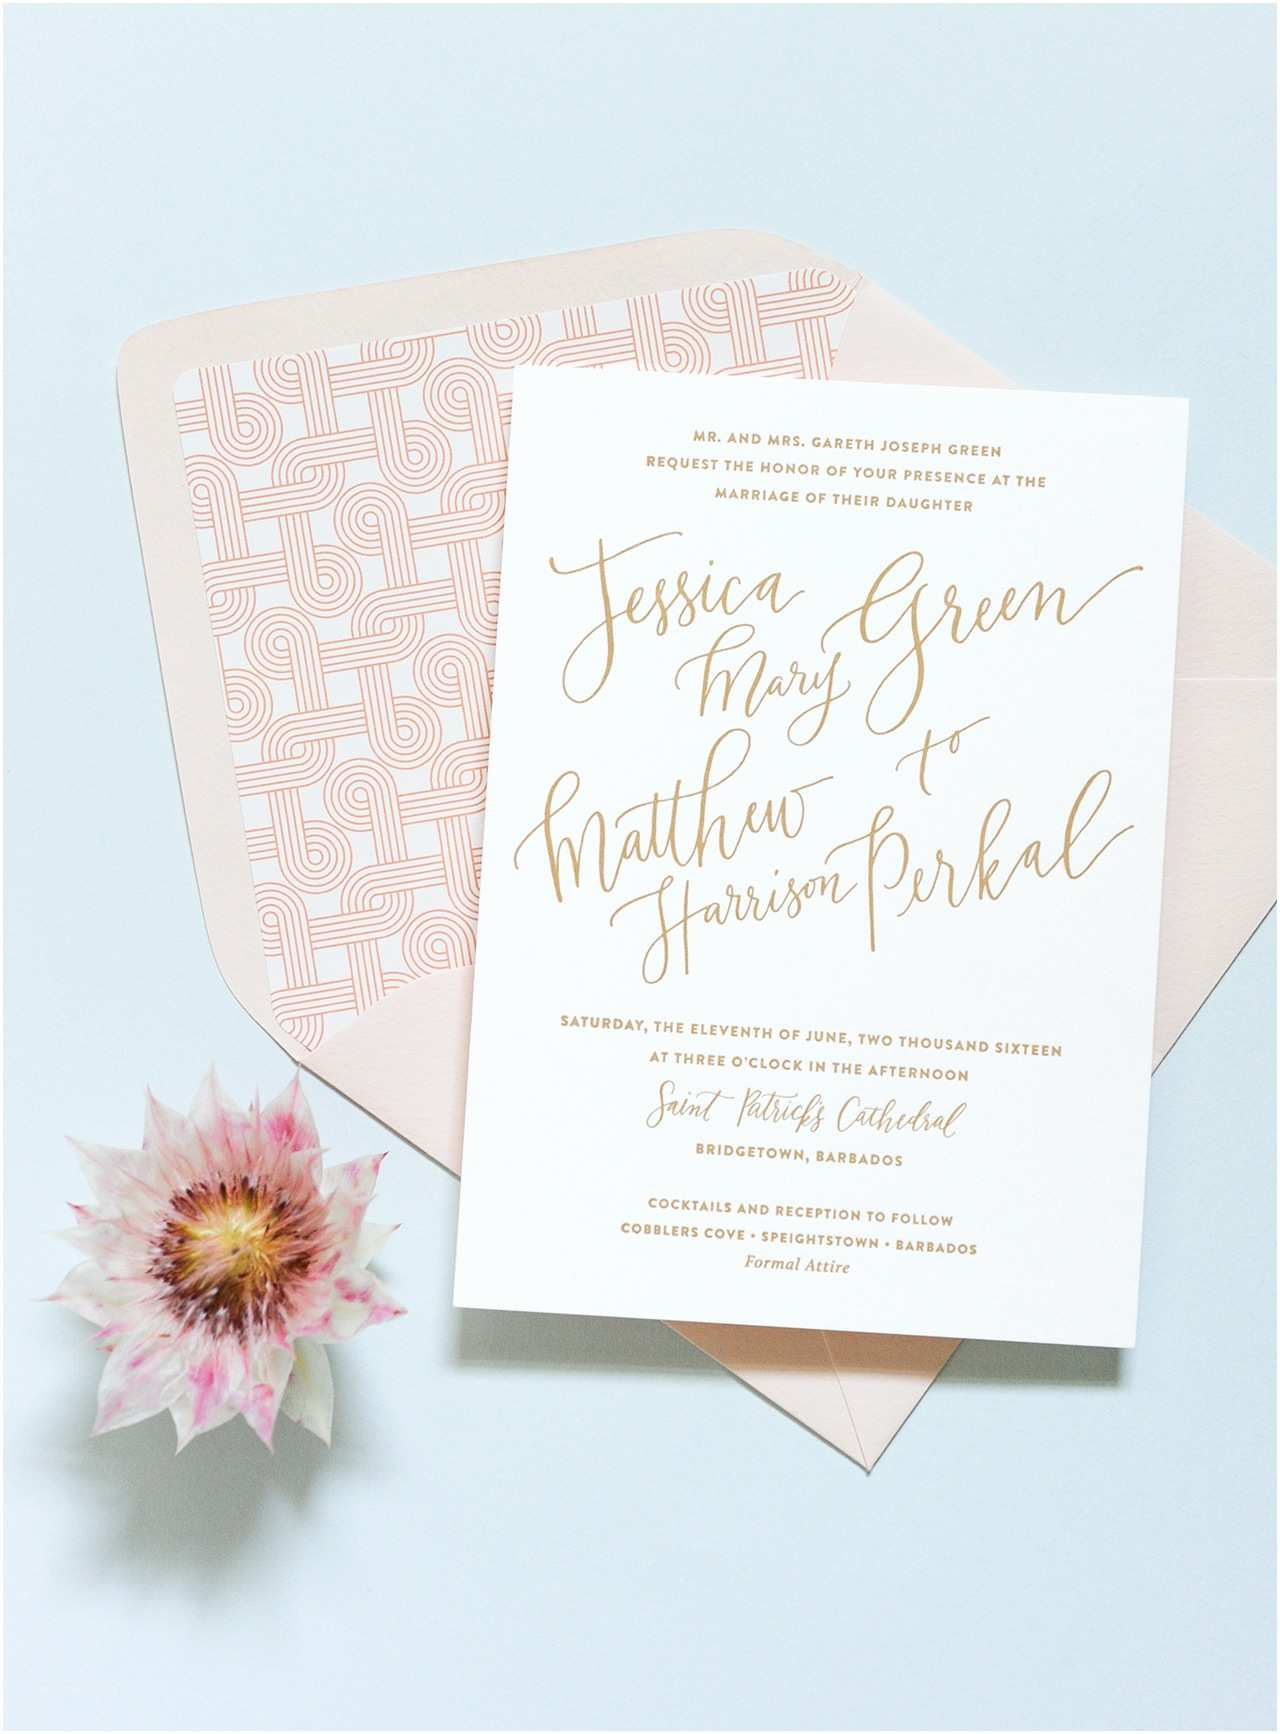 Reception Invites after Destination Wedding attractive Reception Invitation after Destination Wedding